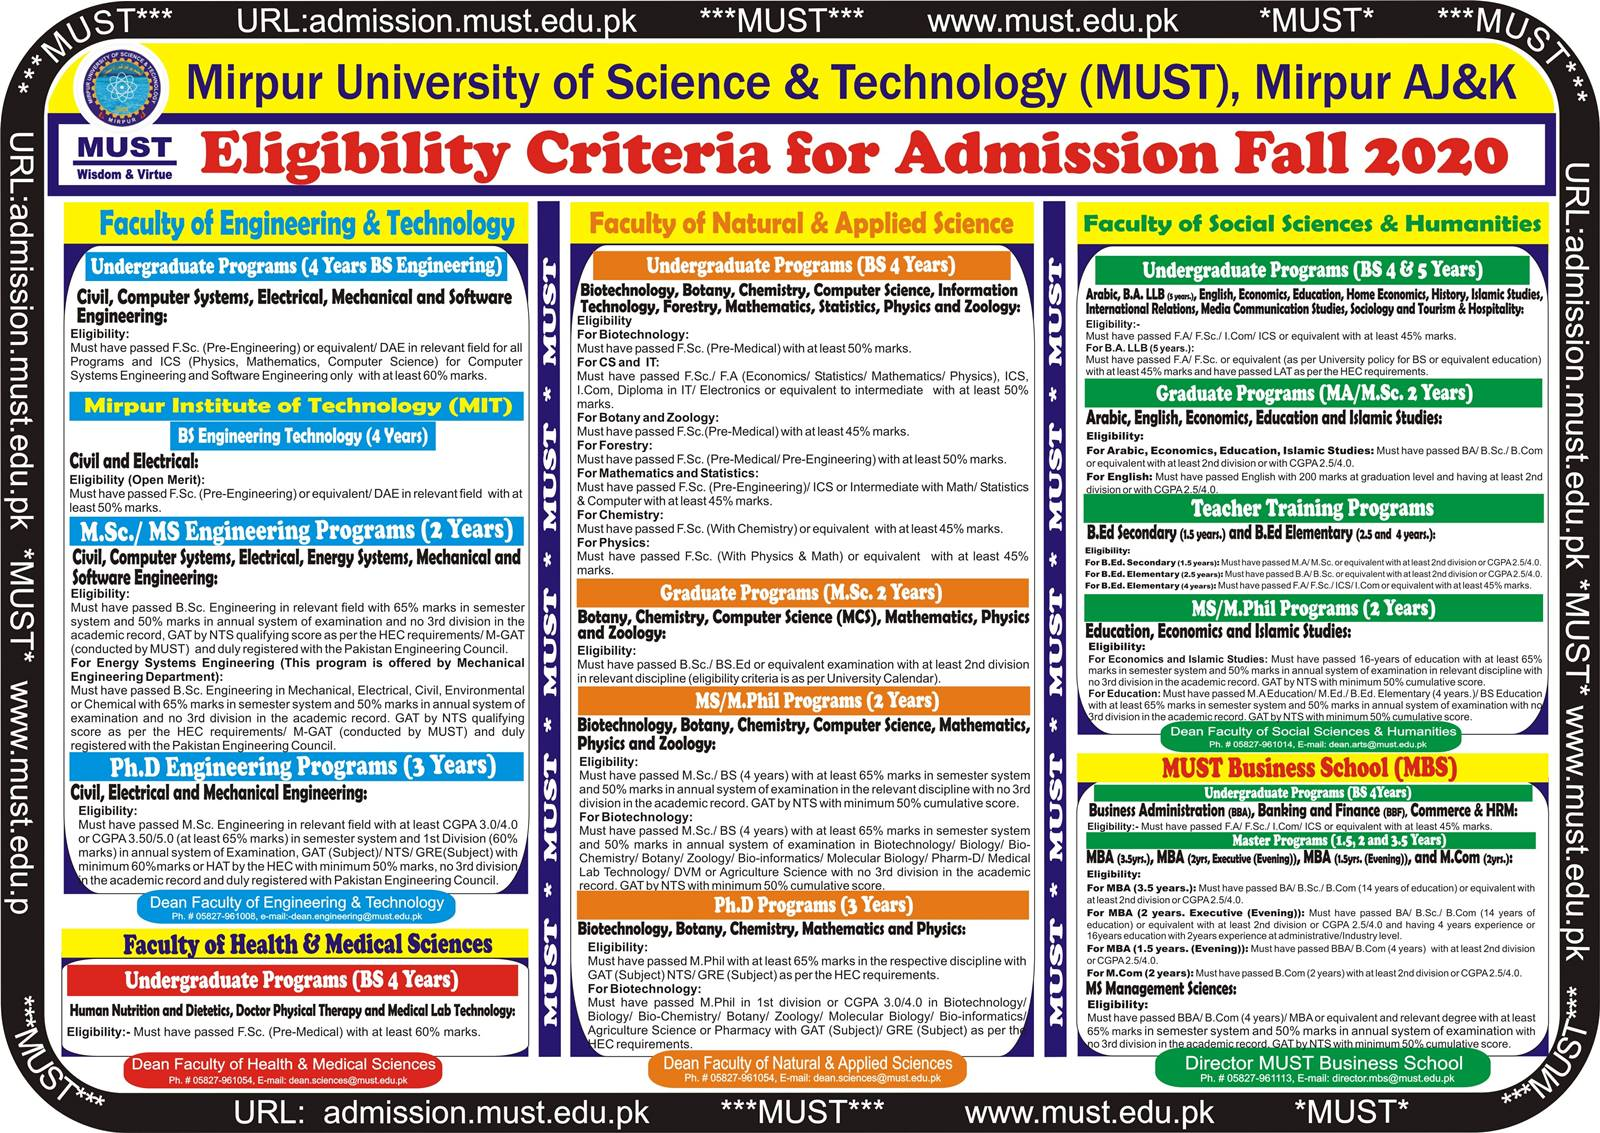 Must University Admission 2021 Application Form Last Date Eligibility Criteria Mirpur University of Science & Technology